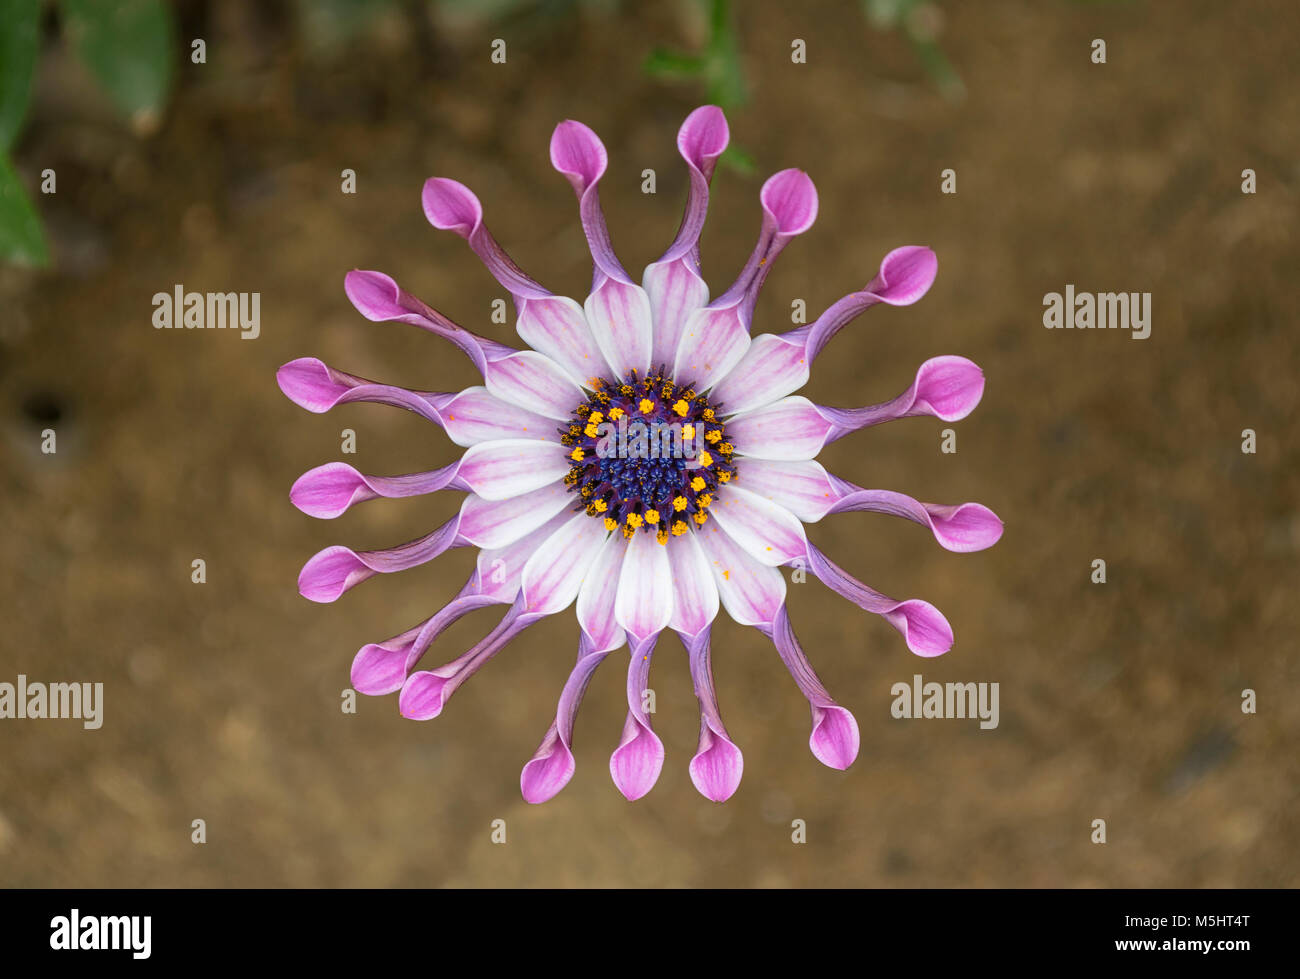 closeup of lavender African whirligig daisy flower - Stock Image